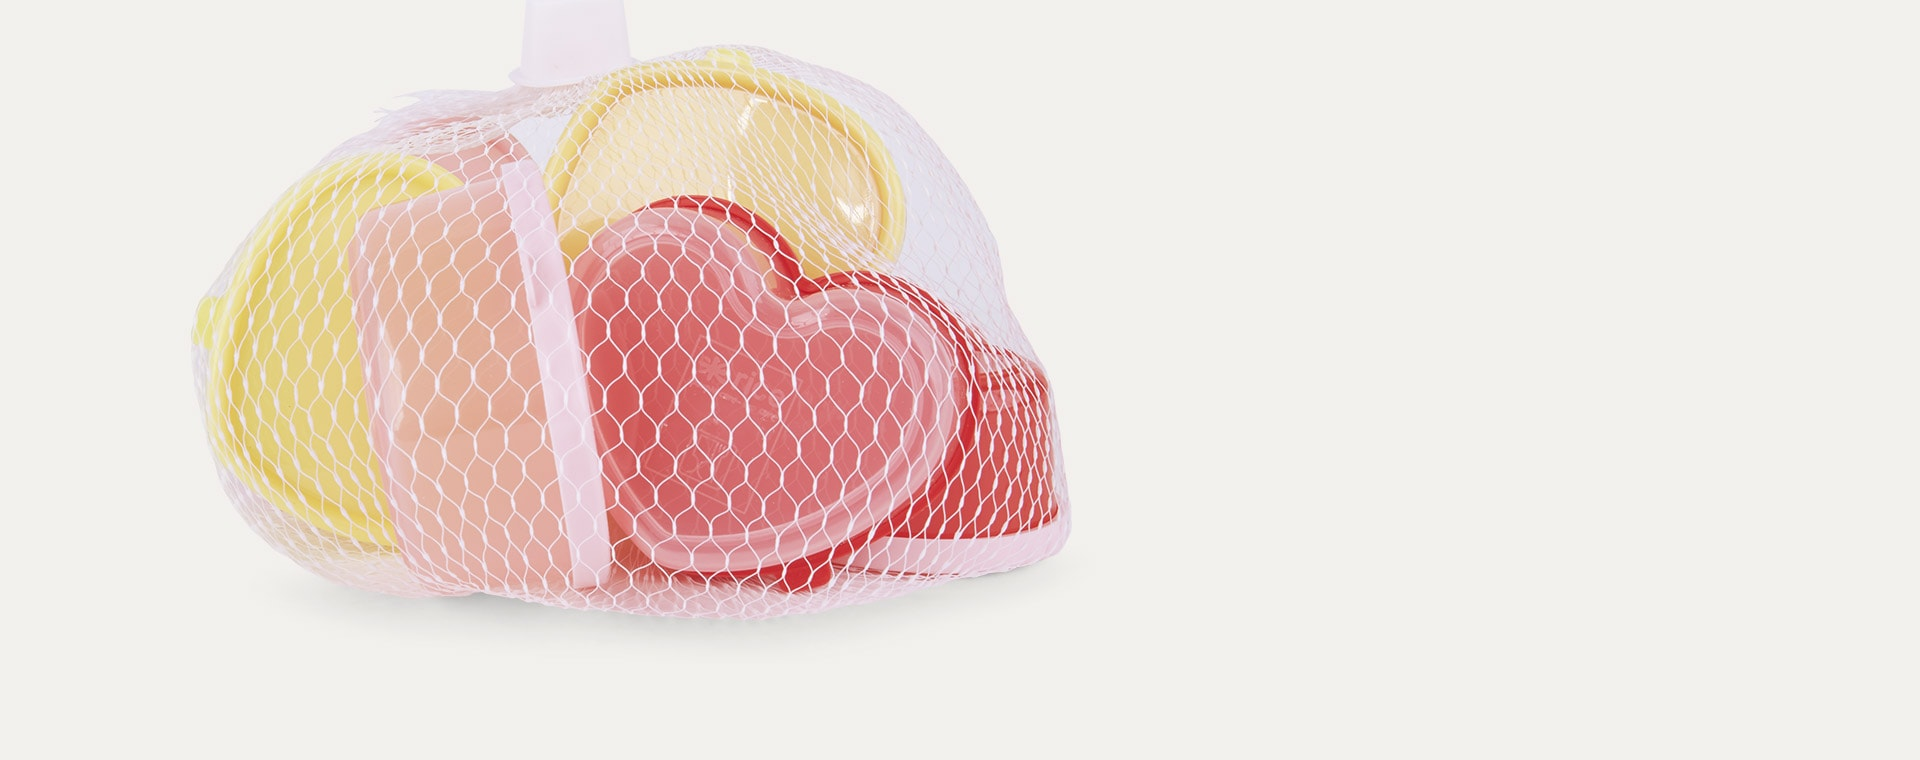 Multi Rice Heart Shaped Food Boxes